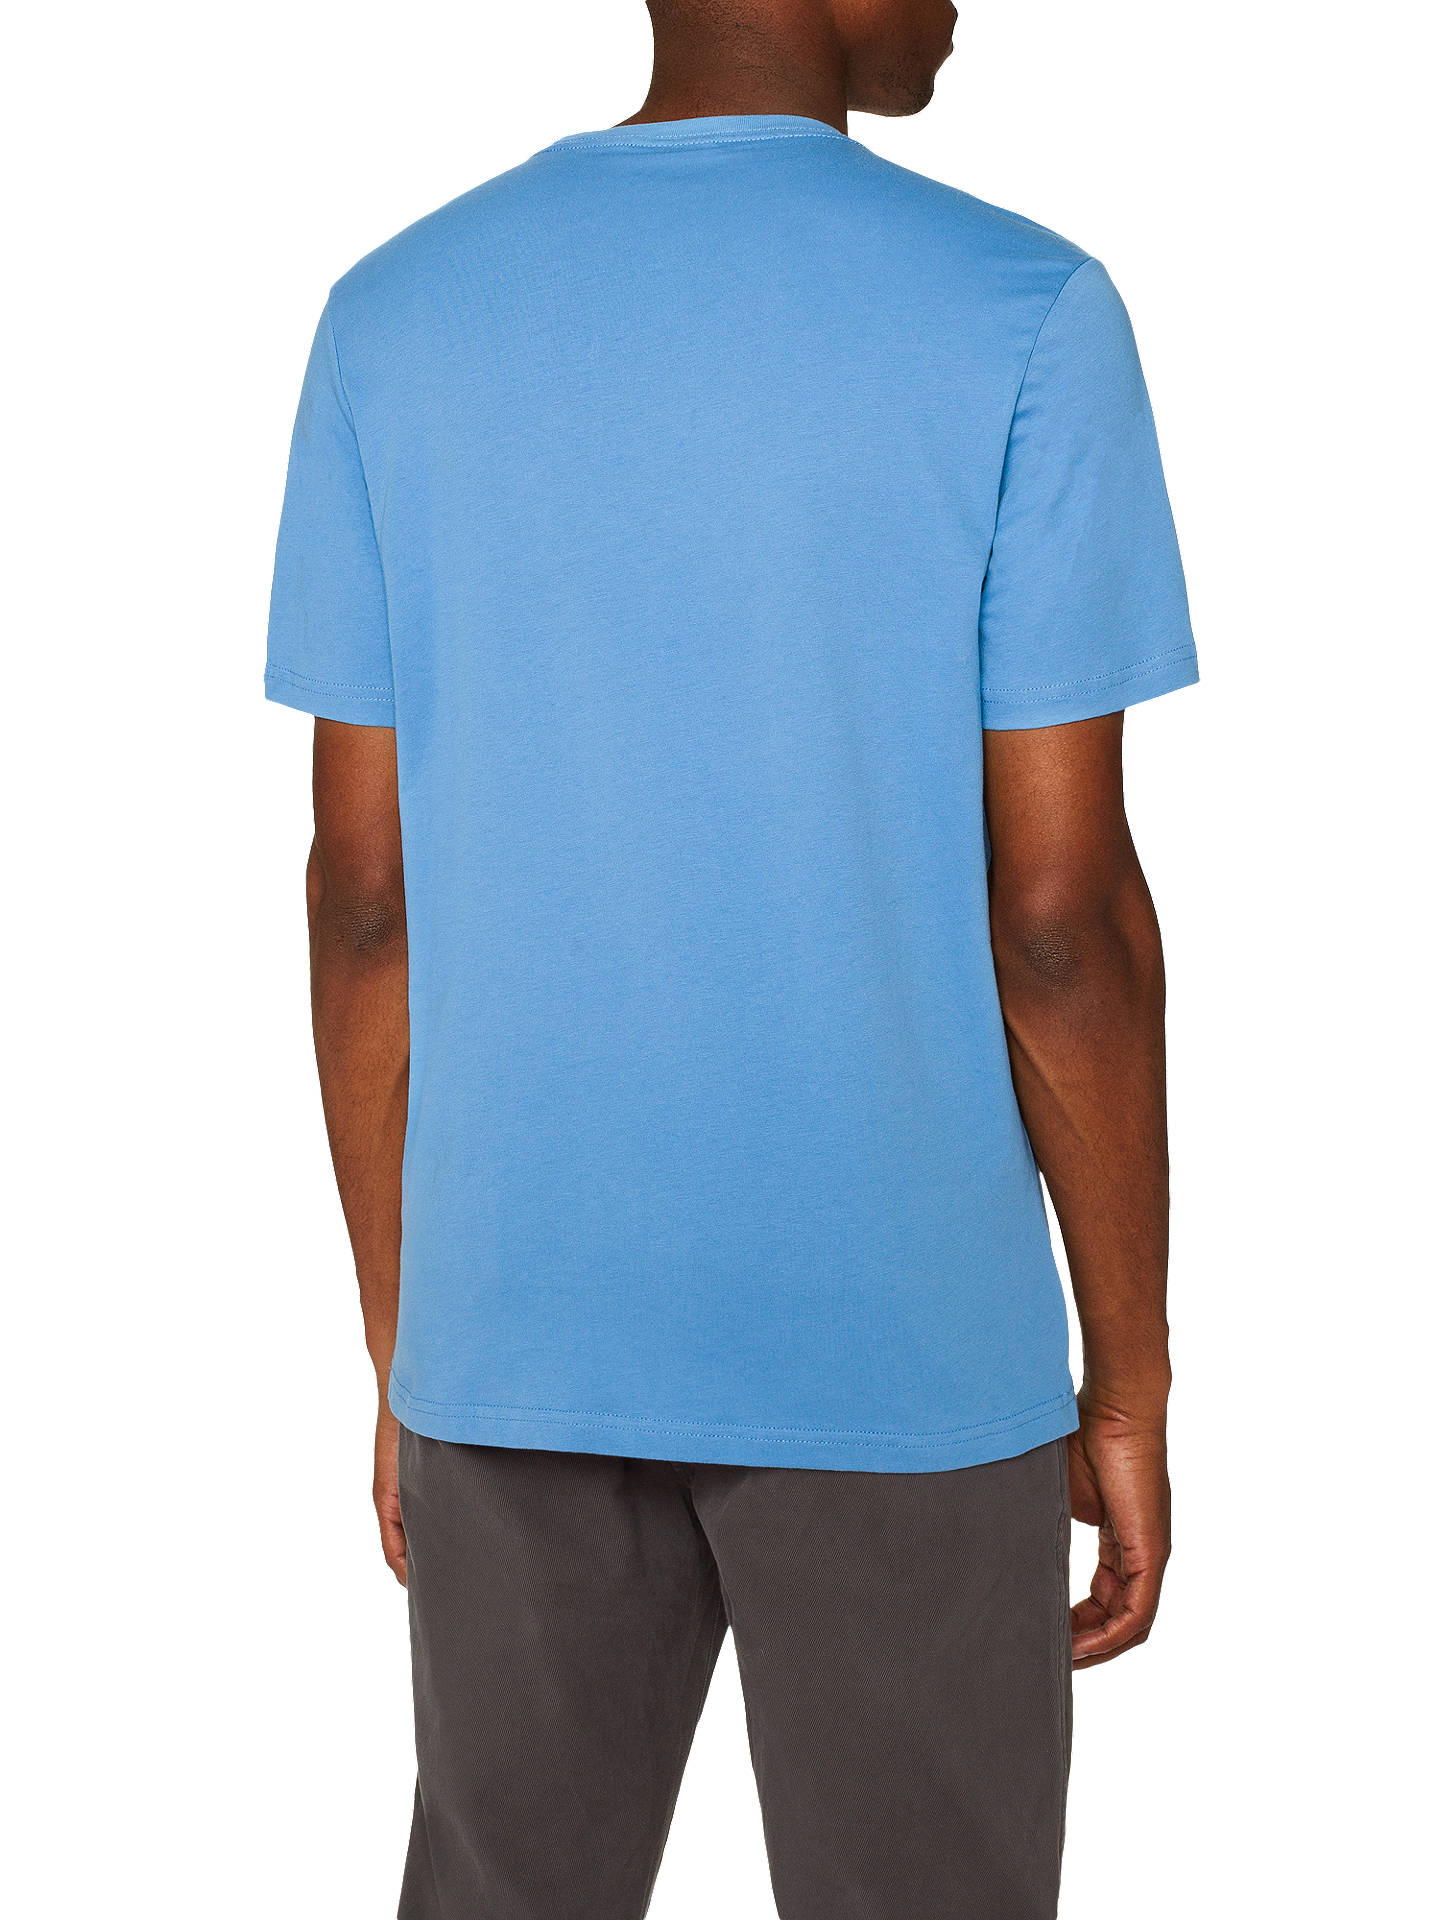 Buy PS Paul Smith Mini Zebra Crew T-Shirt, Light Blue, XXL Online at johnlewis.com